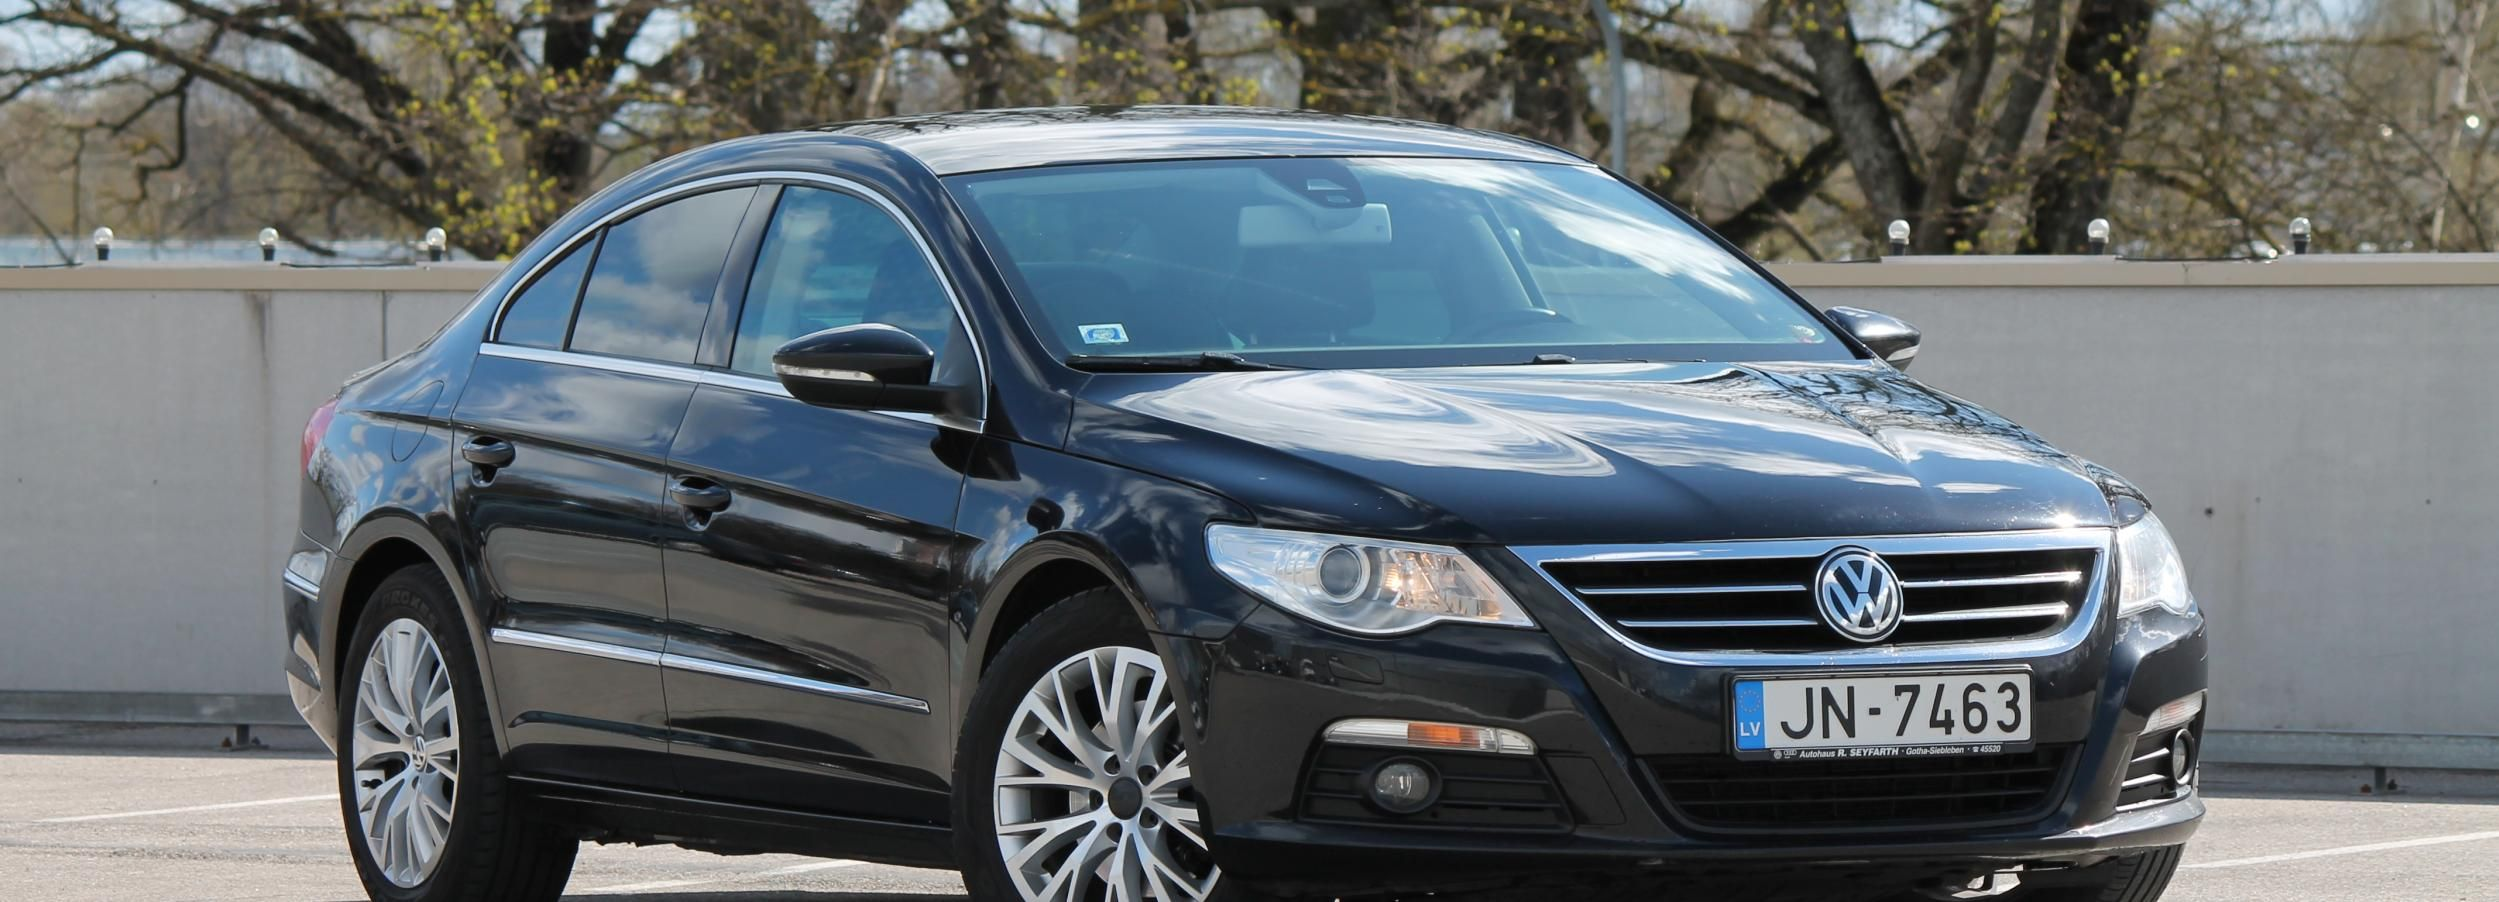 Private Airport Transfer from Riga Airport to Tartu